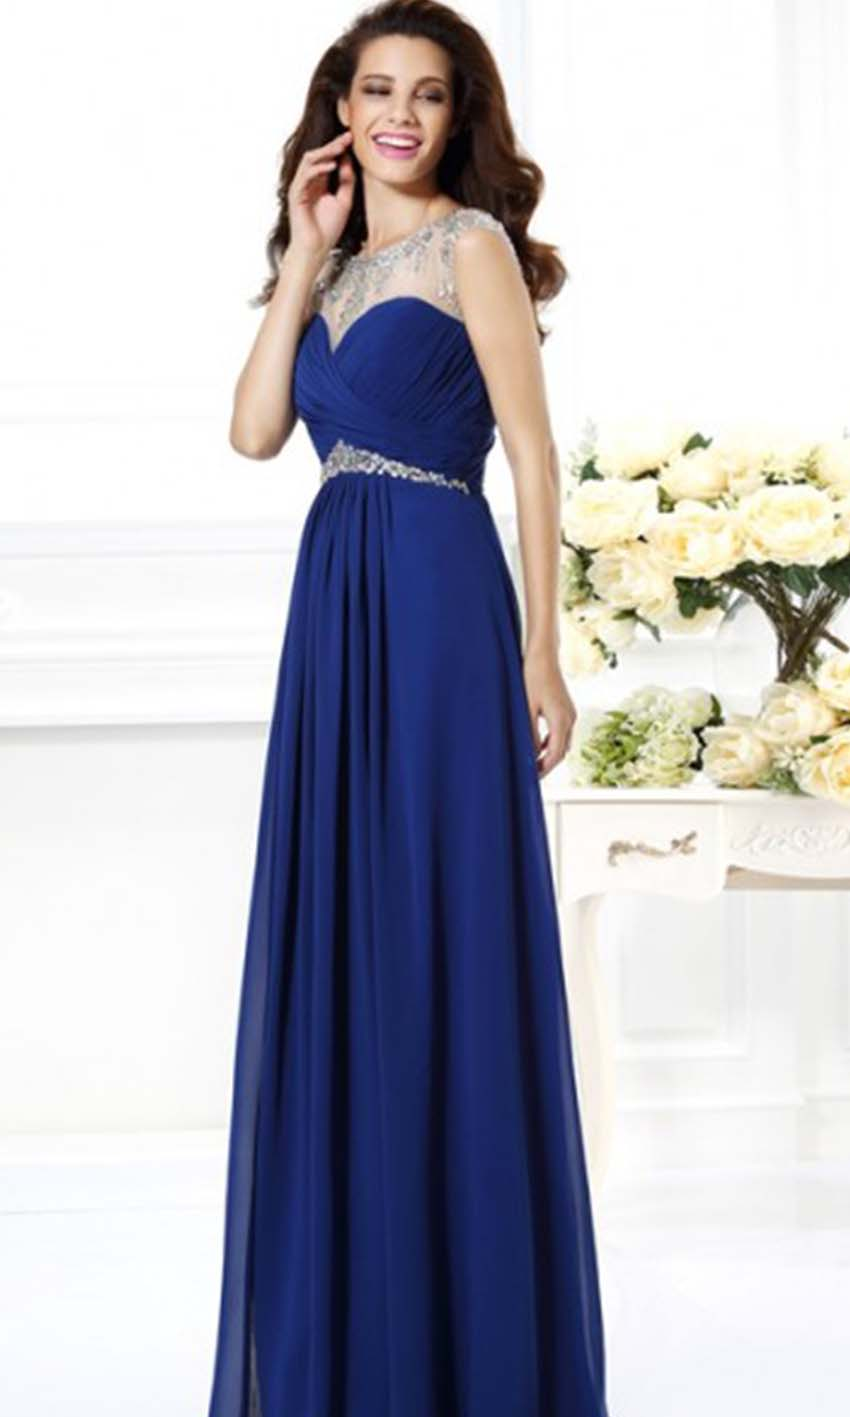 Cheap bridesmaid dress shops uk bridesmaid dresses for Budget wedding dresses uk